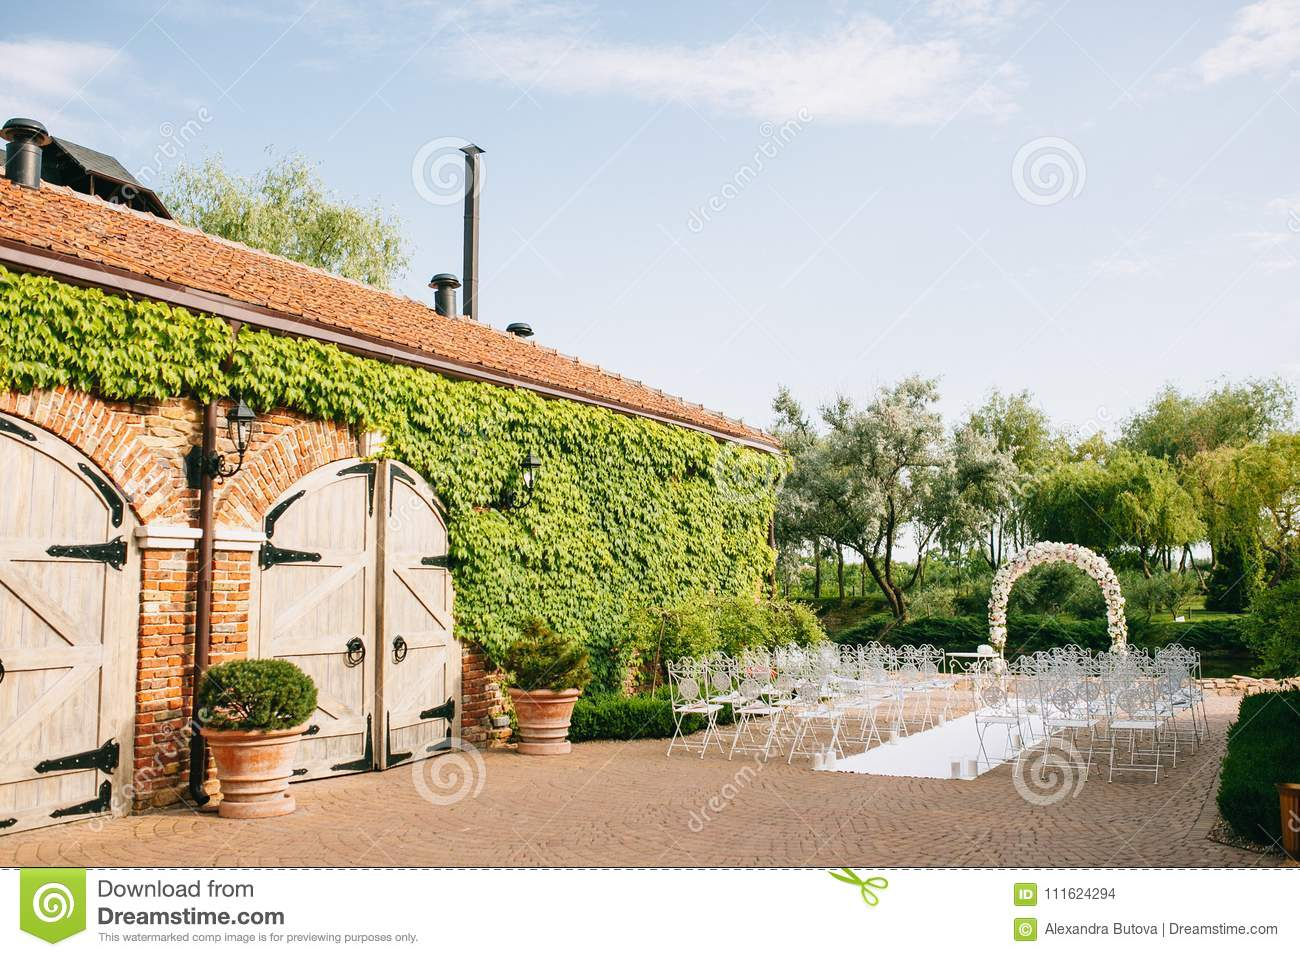 The Wedding Arch Is Decorated With Flowers By Roses Next To The ...